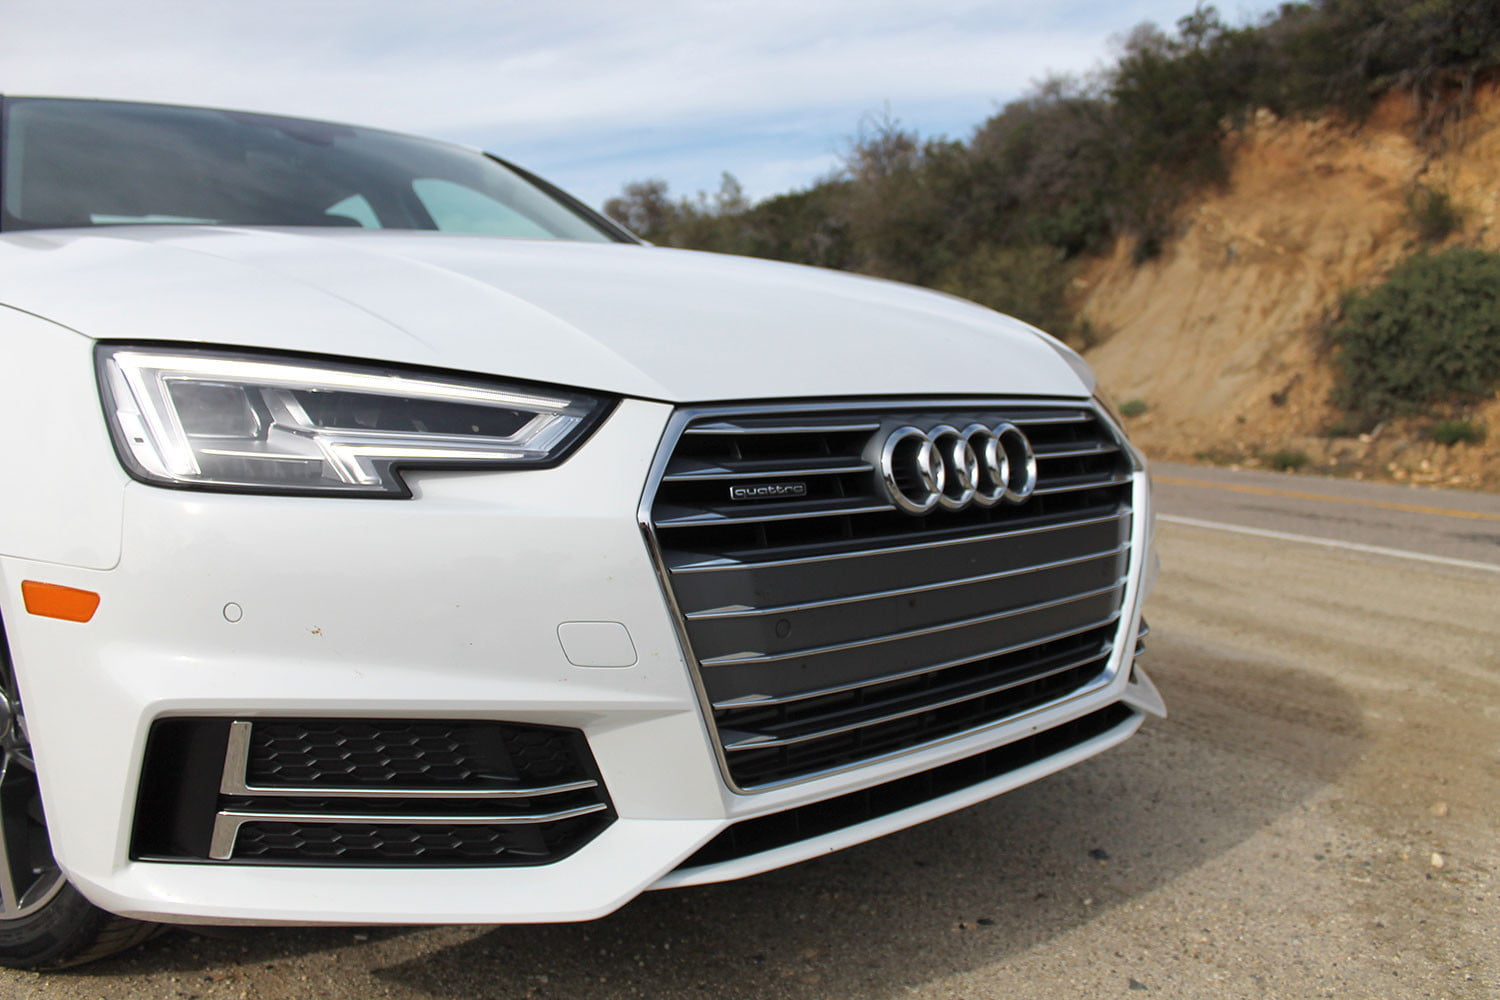 2017 Audi A4 First Drive   Pictures, Specs, Performance   Digital Trends